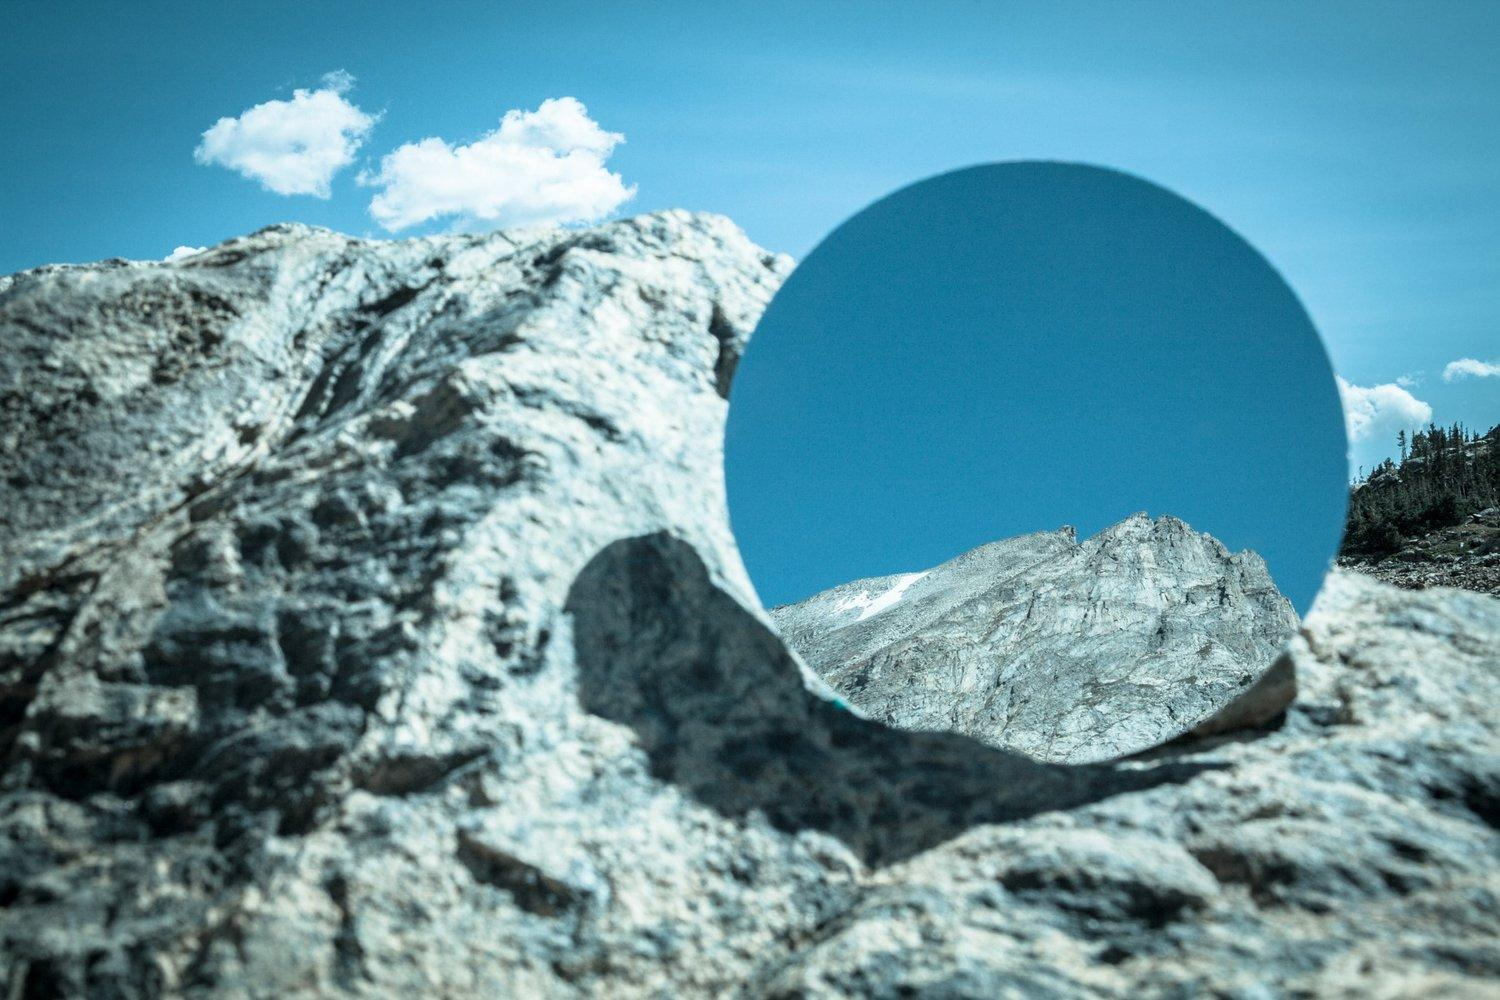 Kevin Hoth's photo of a mountain peak that also contains a circle with a closeup of the peak.